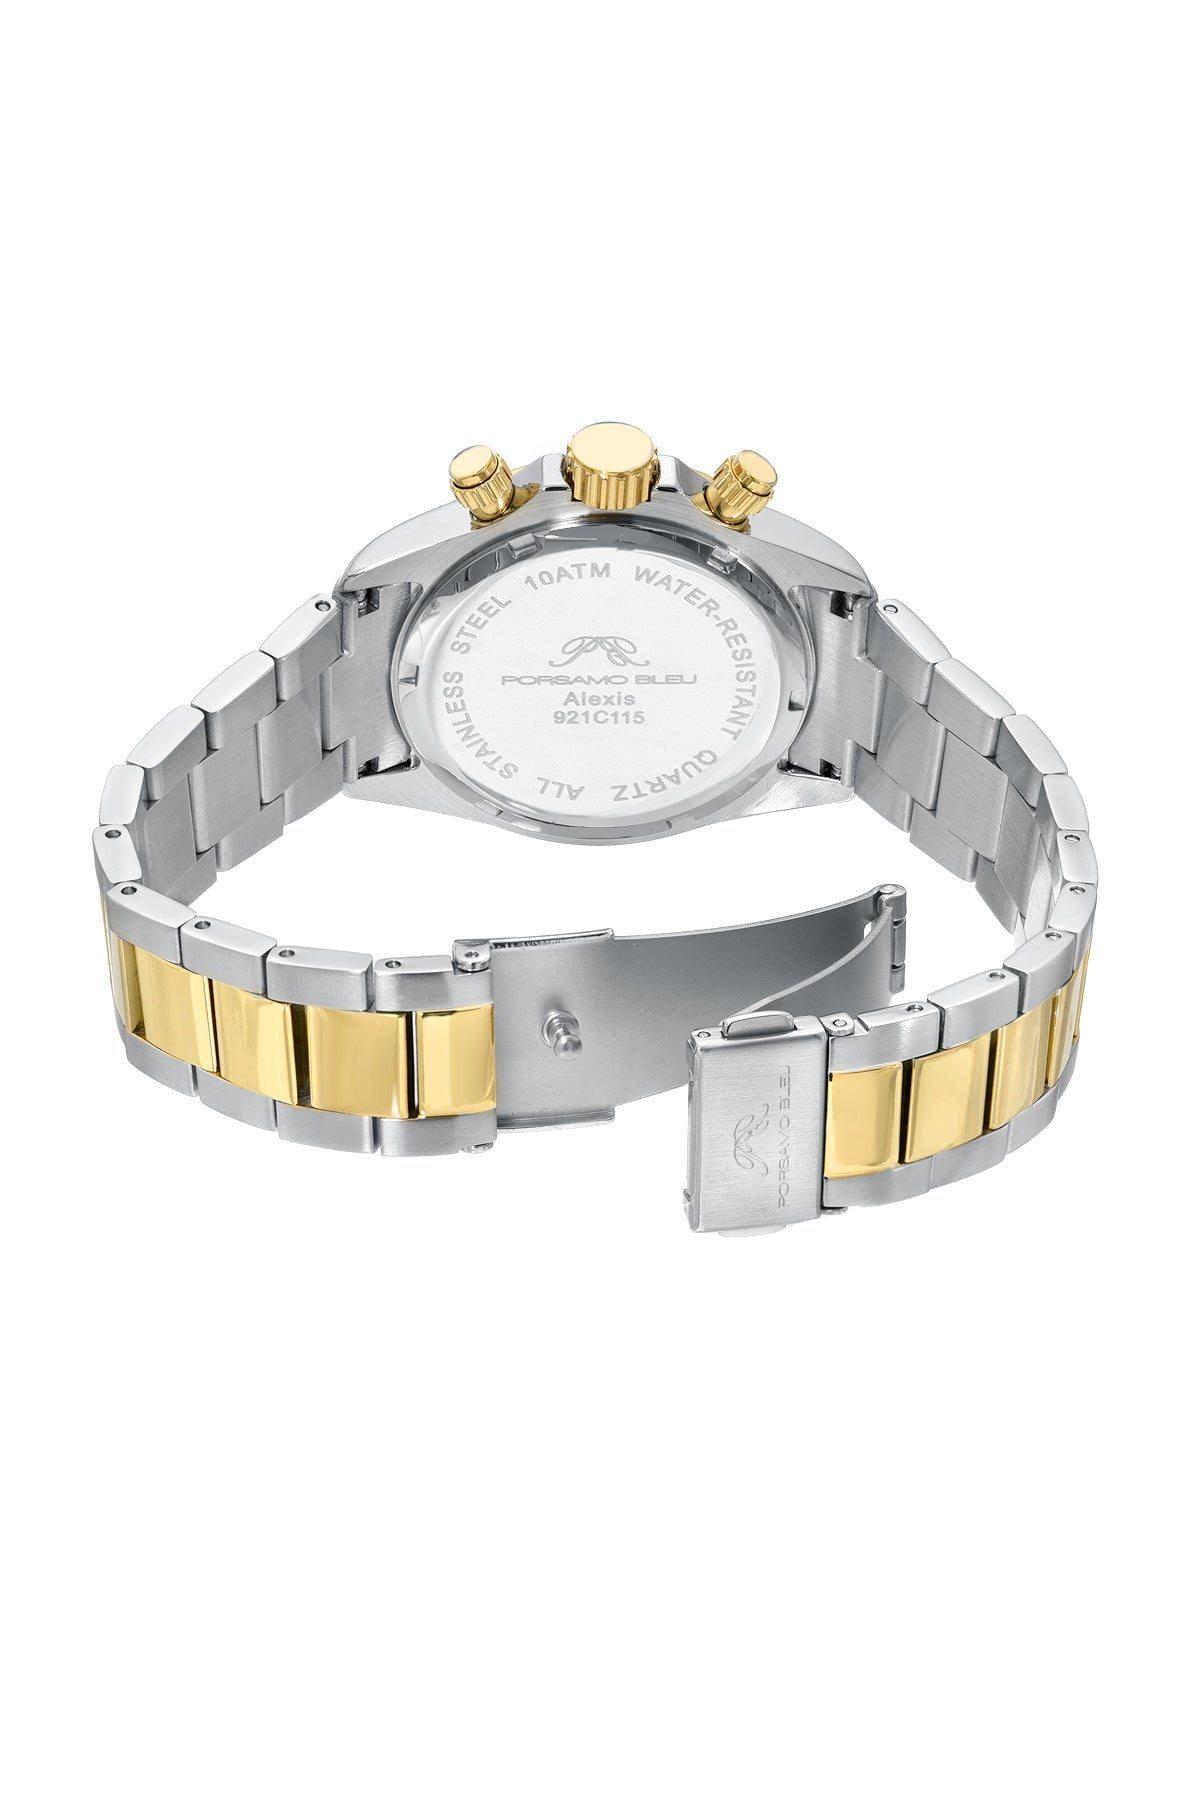 Porsamo Bleu Alexis luxury Women's watch stainless steel, silver, gold, white, 921CALS